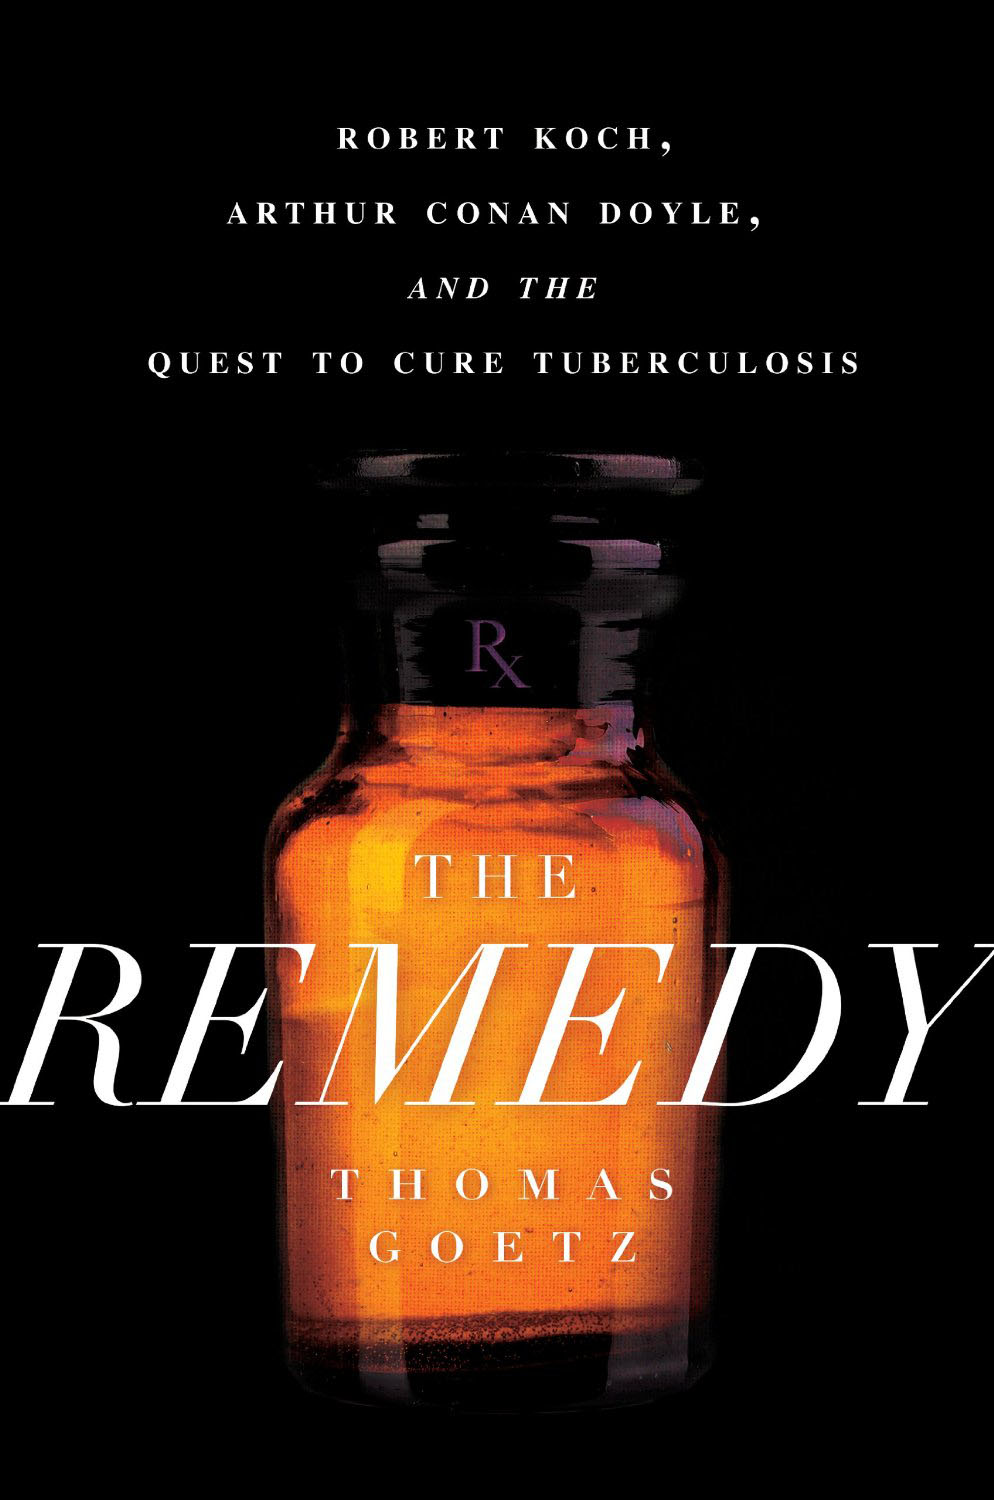 http://www.thomasgoetz.com/inside-the-remedy/